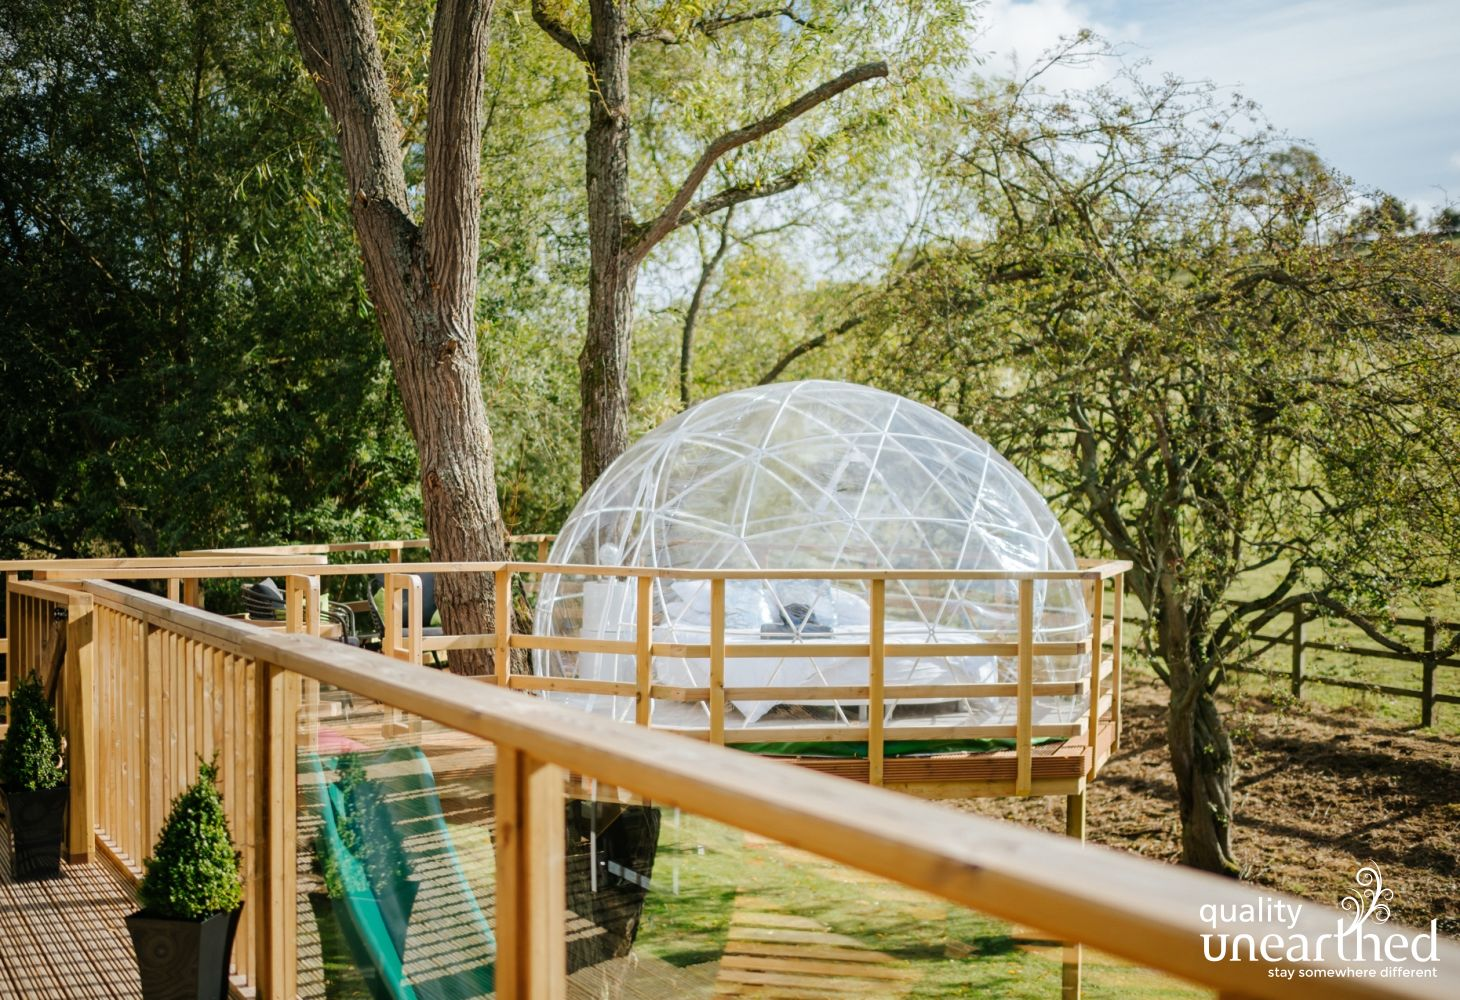 The geodesic dome for 2 sits to the left of the treehouse terrace